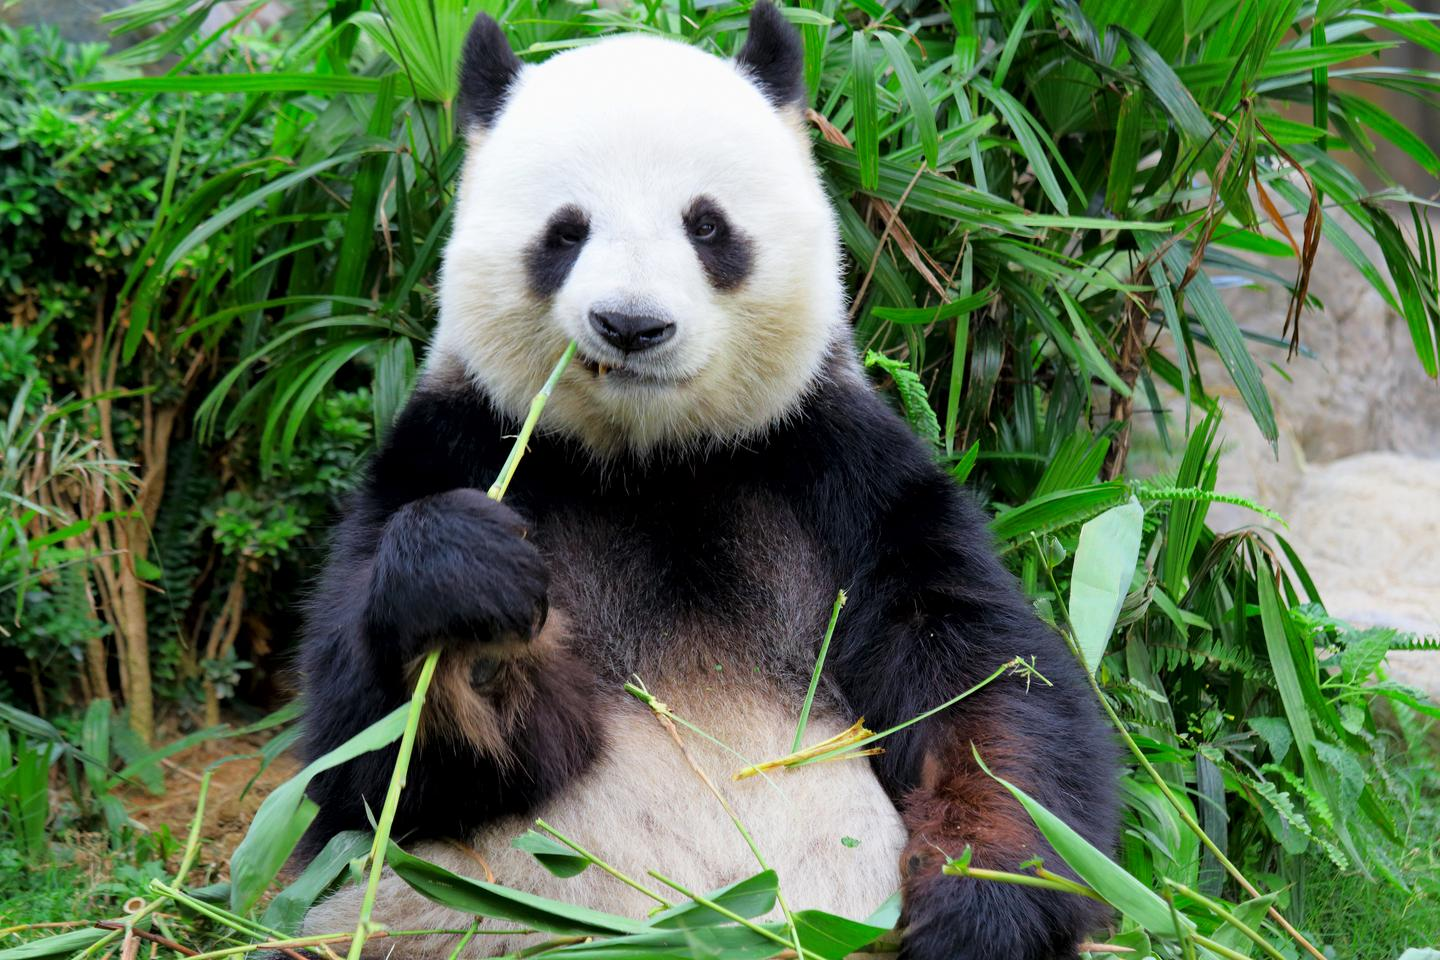 The team suggests that pandas evolved their two-tone appearance due to their poor diet of bamboo